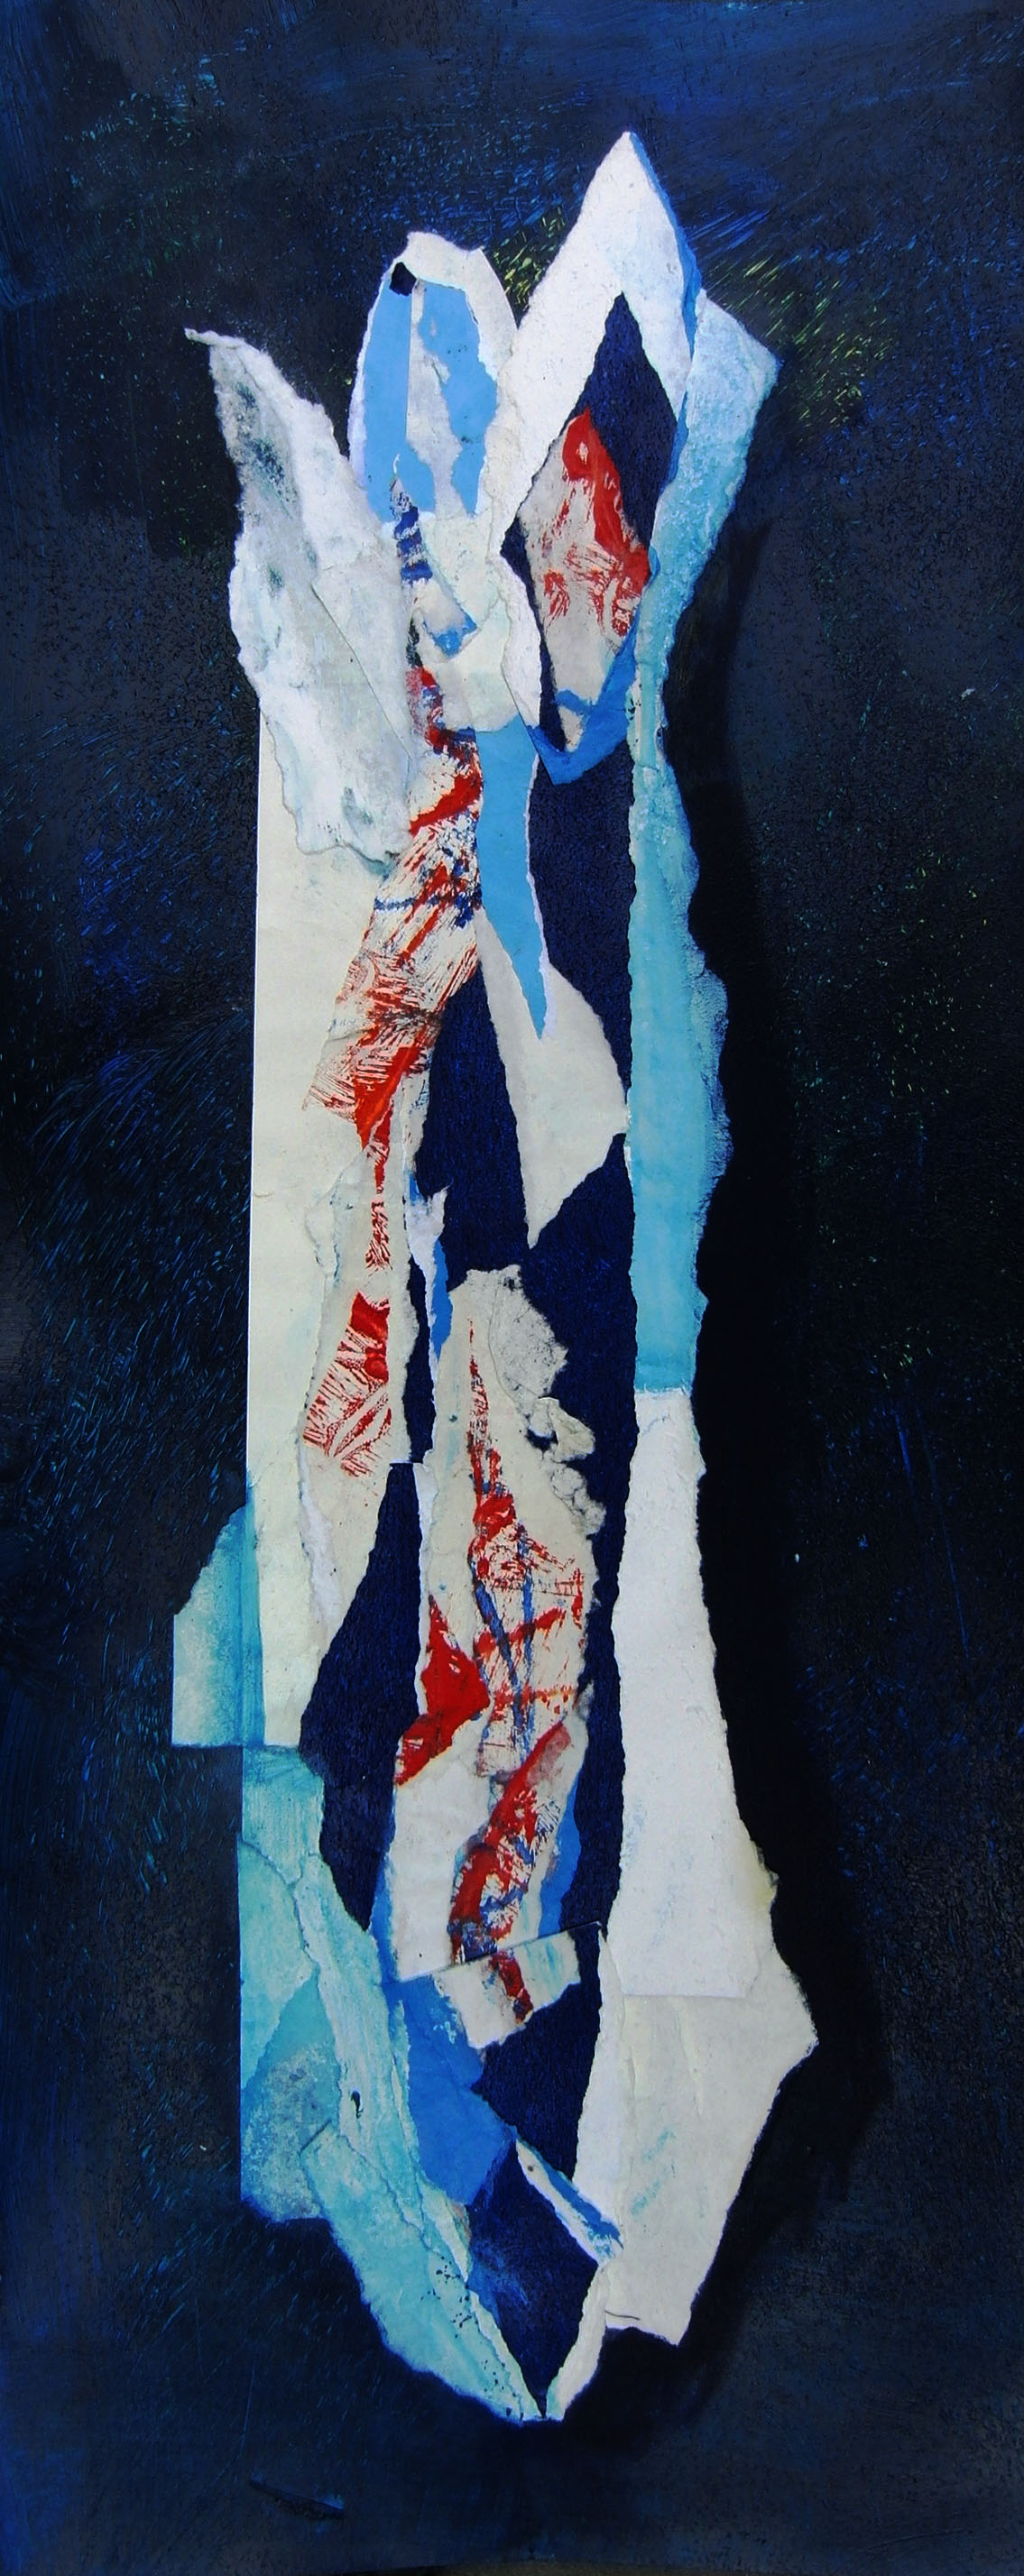 "Sea Bird No. 1,  2015, monotype, collage, 9"" x 16"" (23cm x 41cm), private collection, Paris, France"